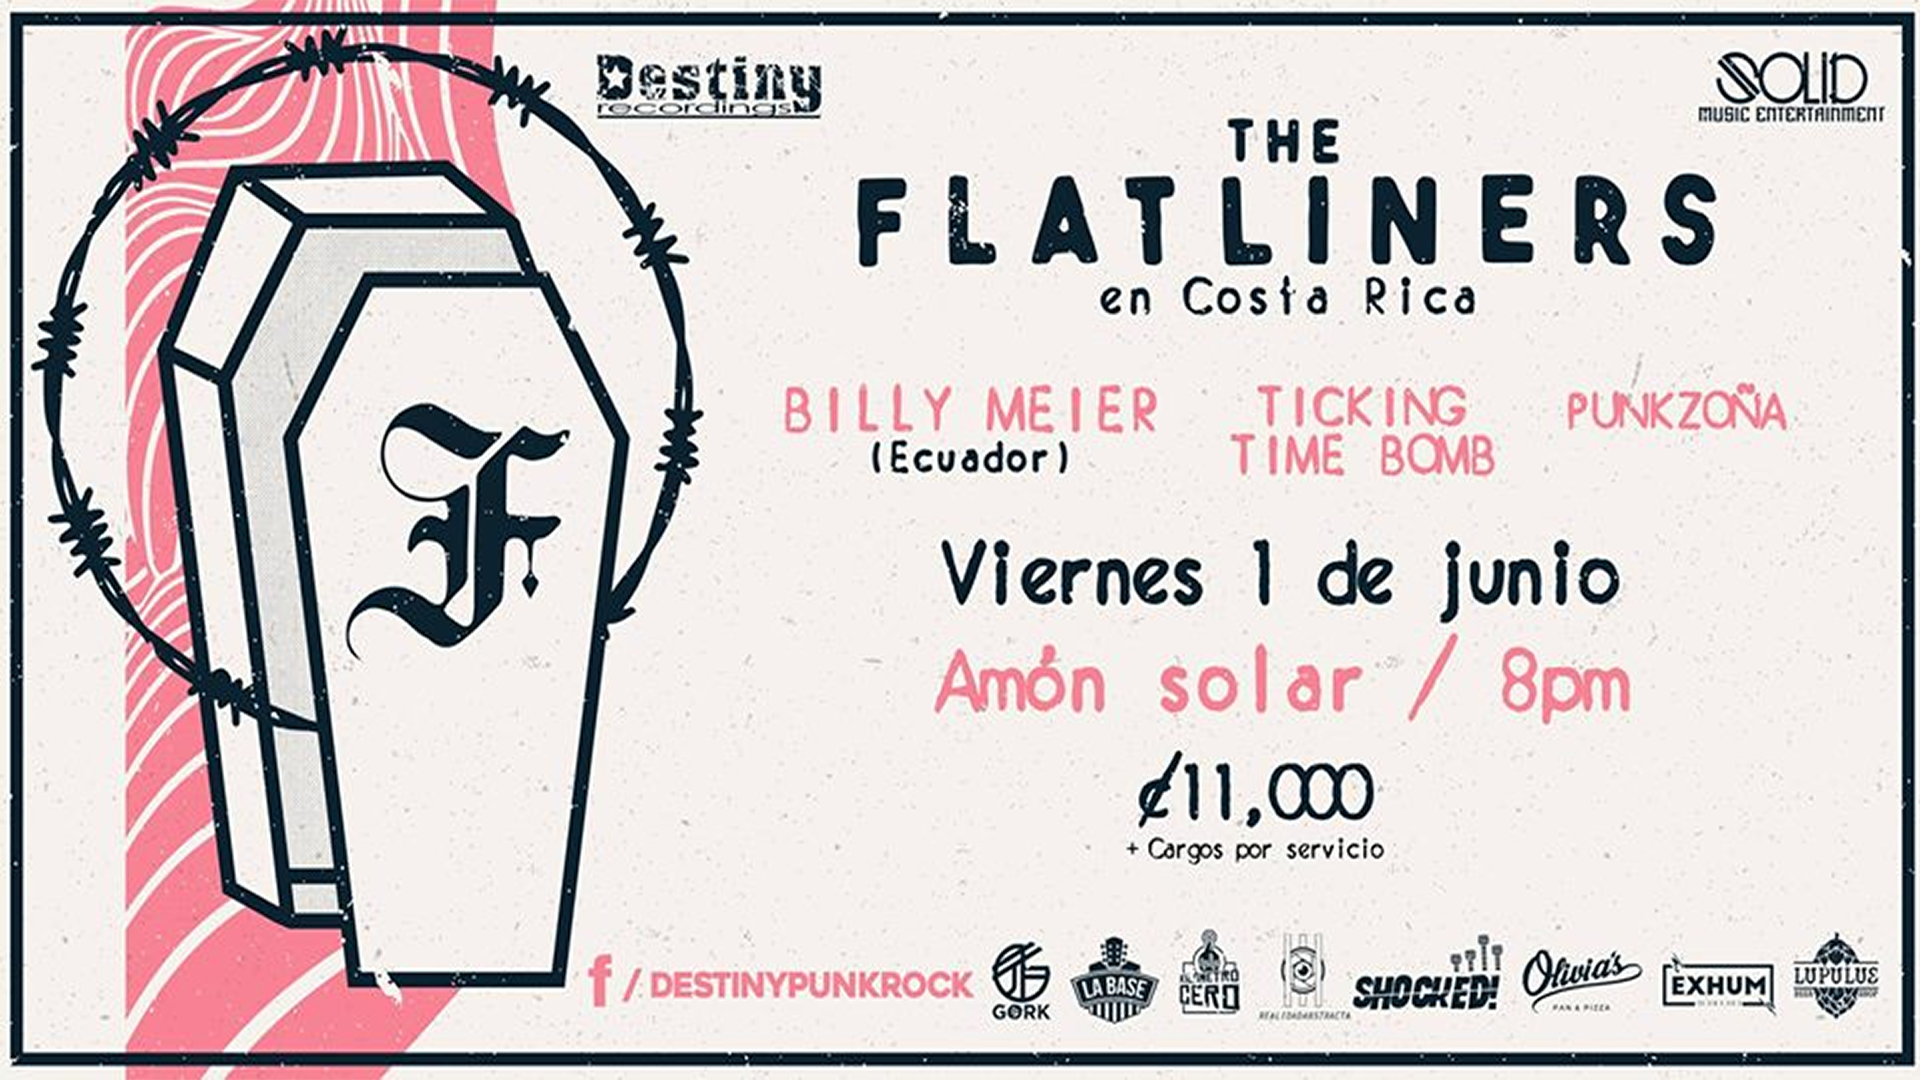 The Flatliners vuelve a Costa Rica